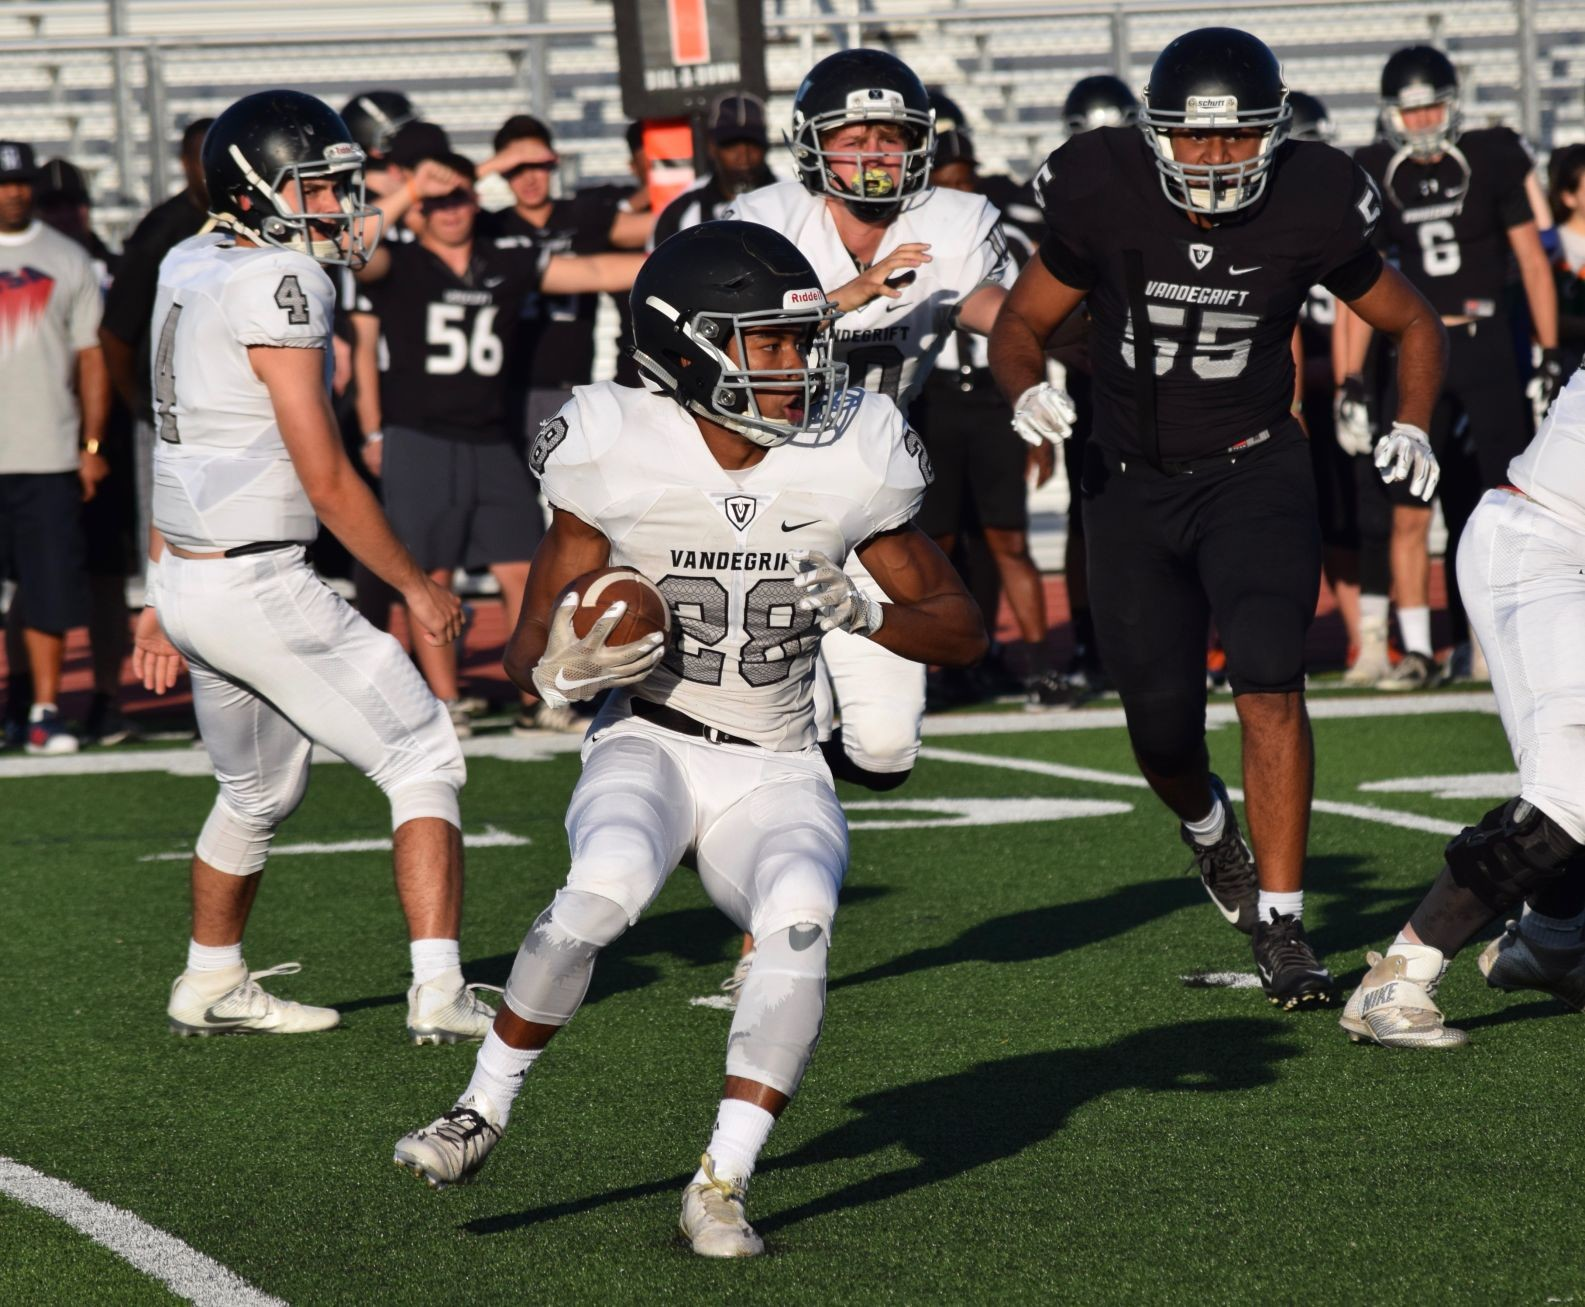 Mack Parker was the Vipers' second leading rusher last season with 571 yards and five touchdowns. Vandegrift will look to avenge its 21-20 loss to Odessa Permian last season when it opens this year on the road against the Panthers.